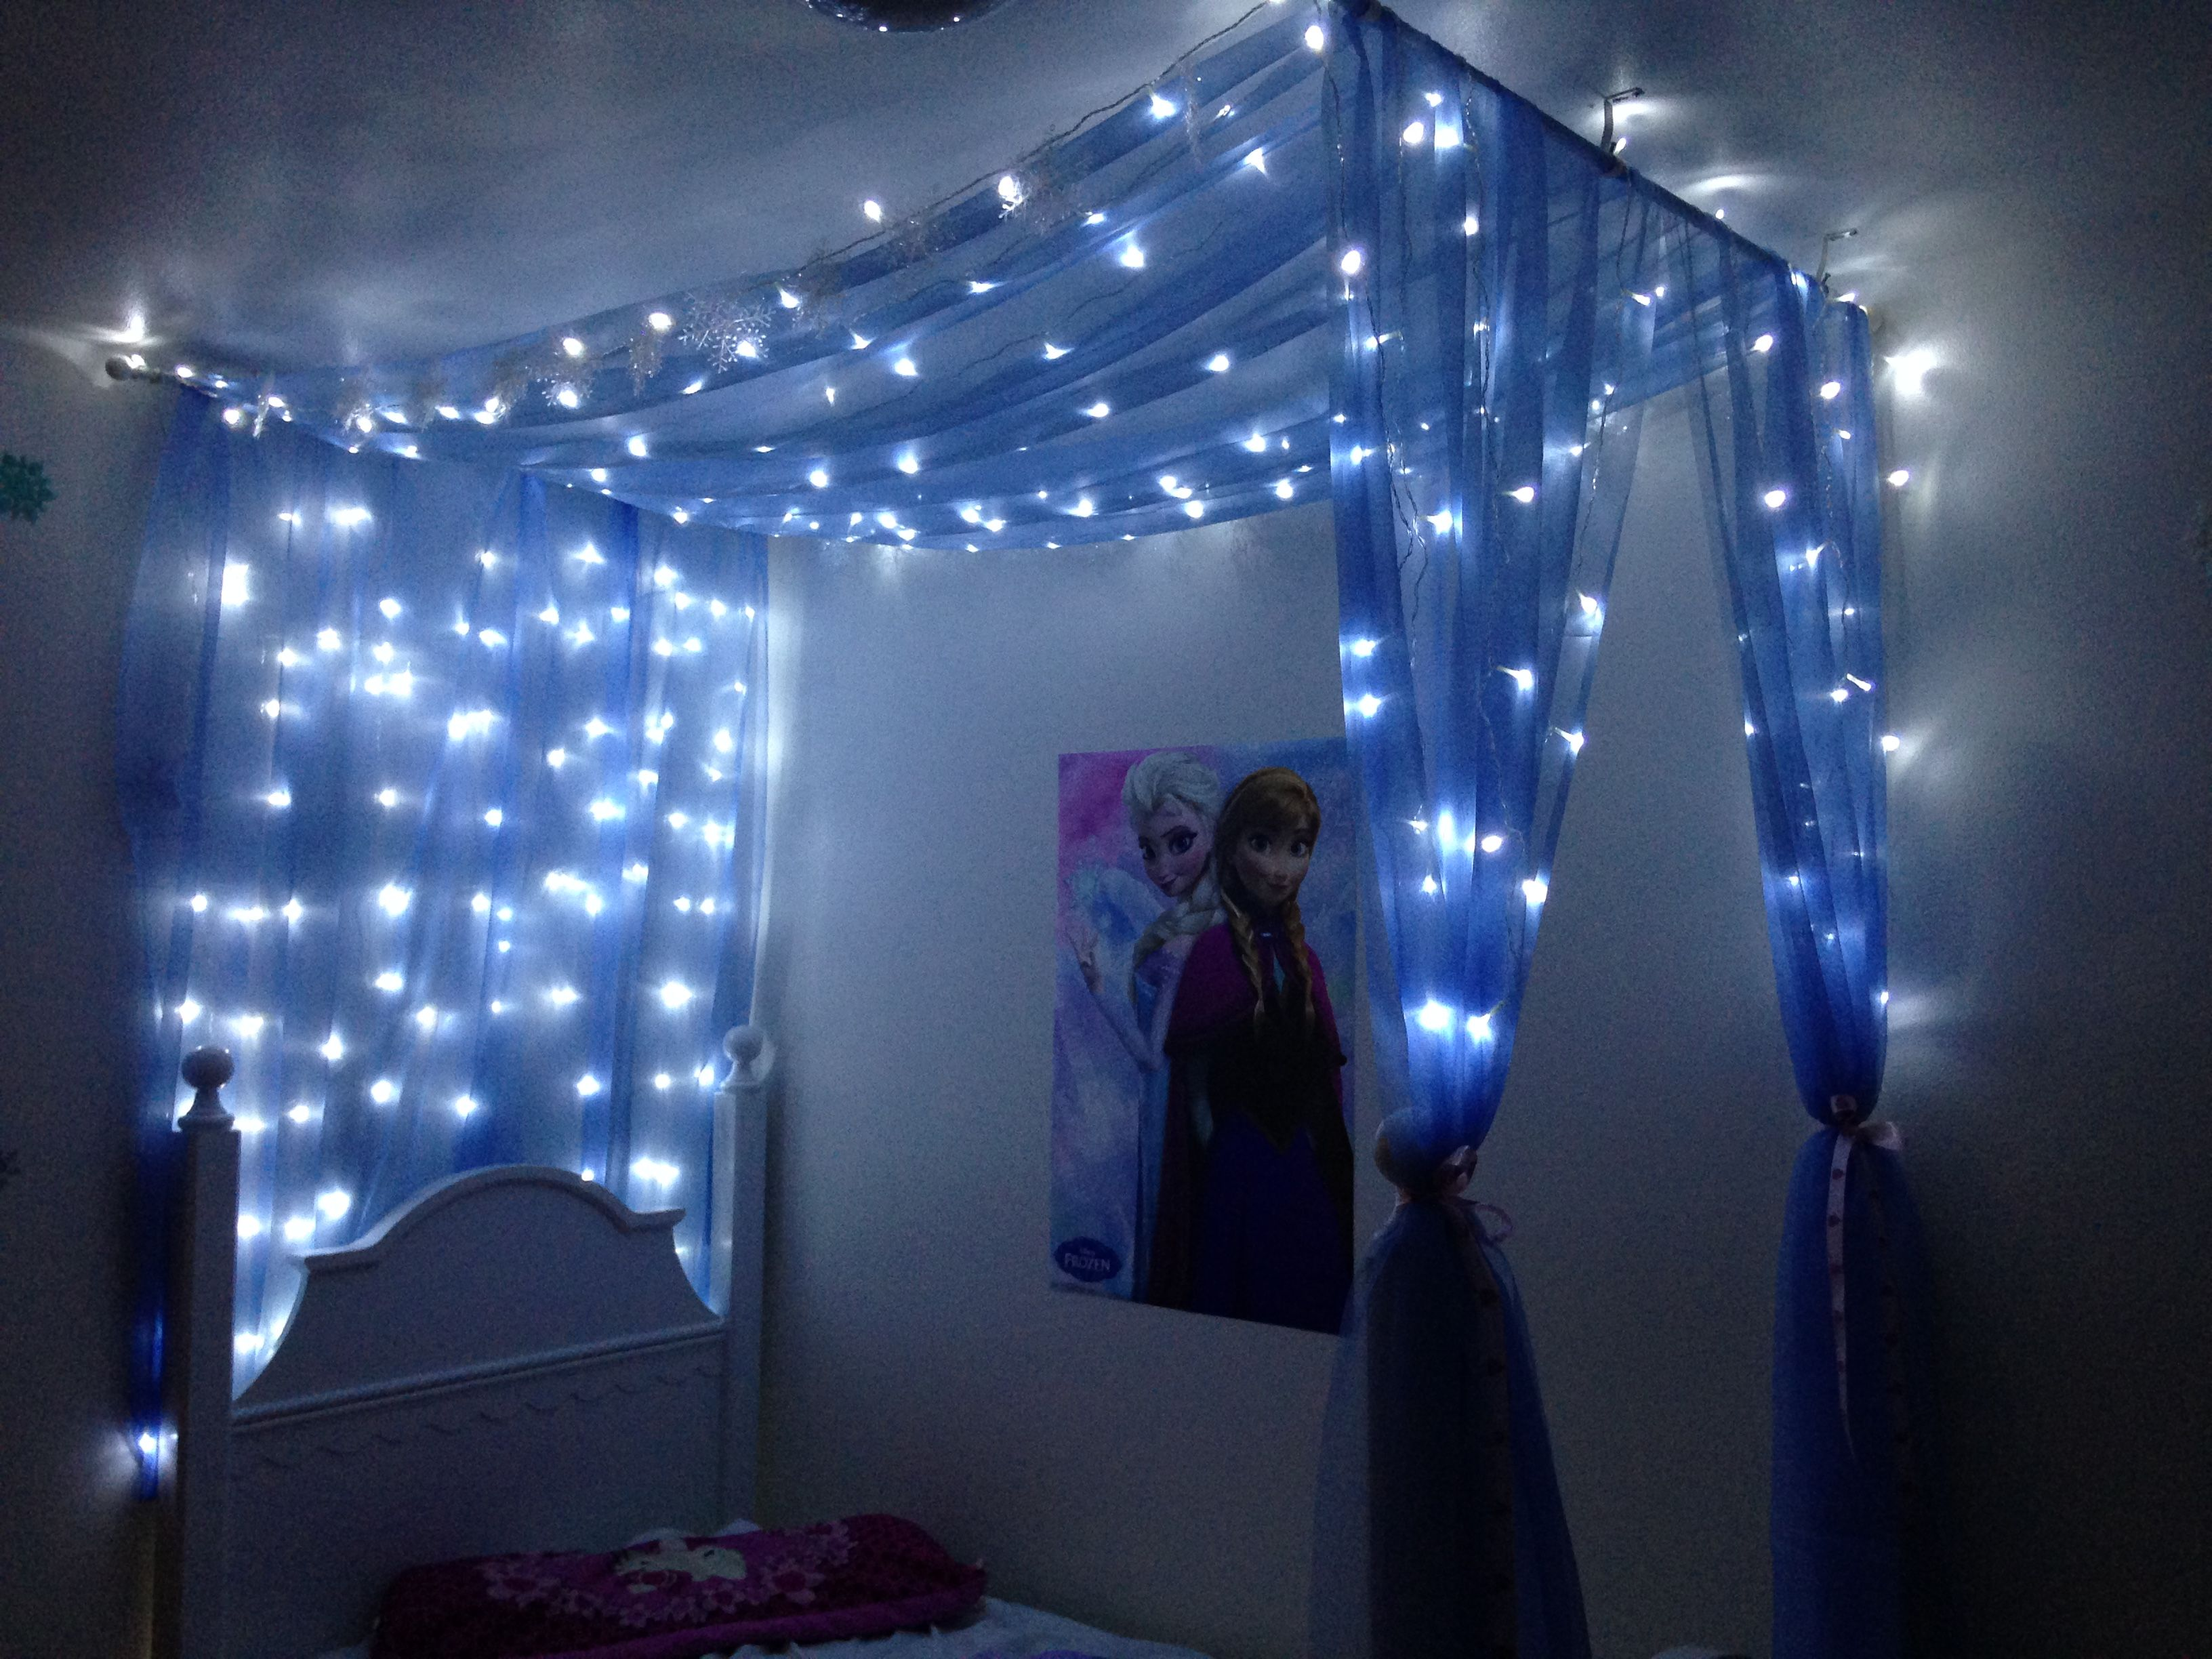 Diy Canopy For Frozen Themed Room 2 Window Scarves And A 3m 3m Led Light Window Curtain From Amazon Held Up Frozen Themed Bedroom Frozen Bedroom Frozen Room